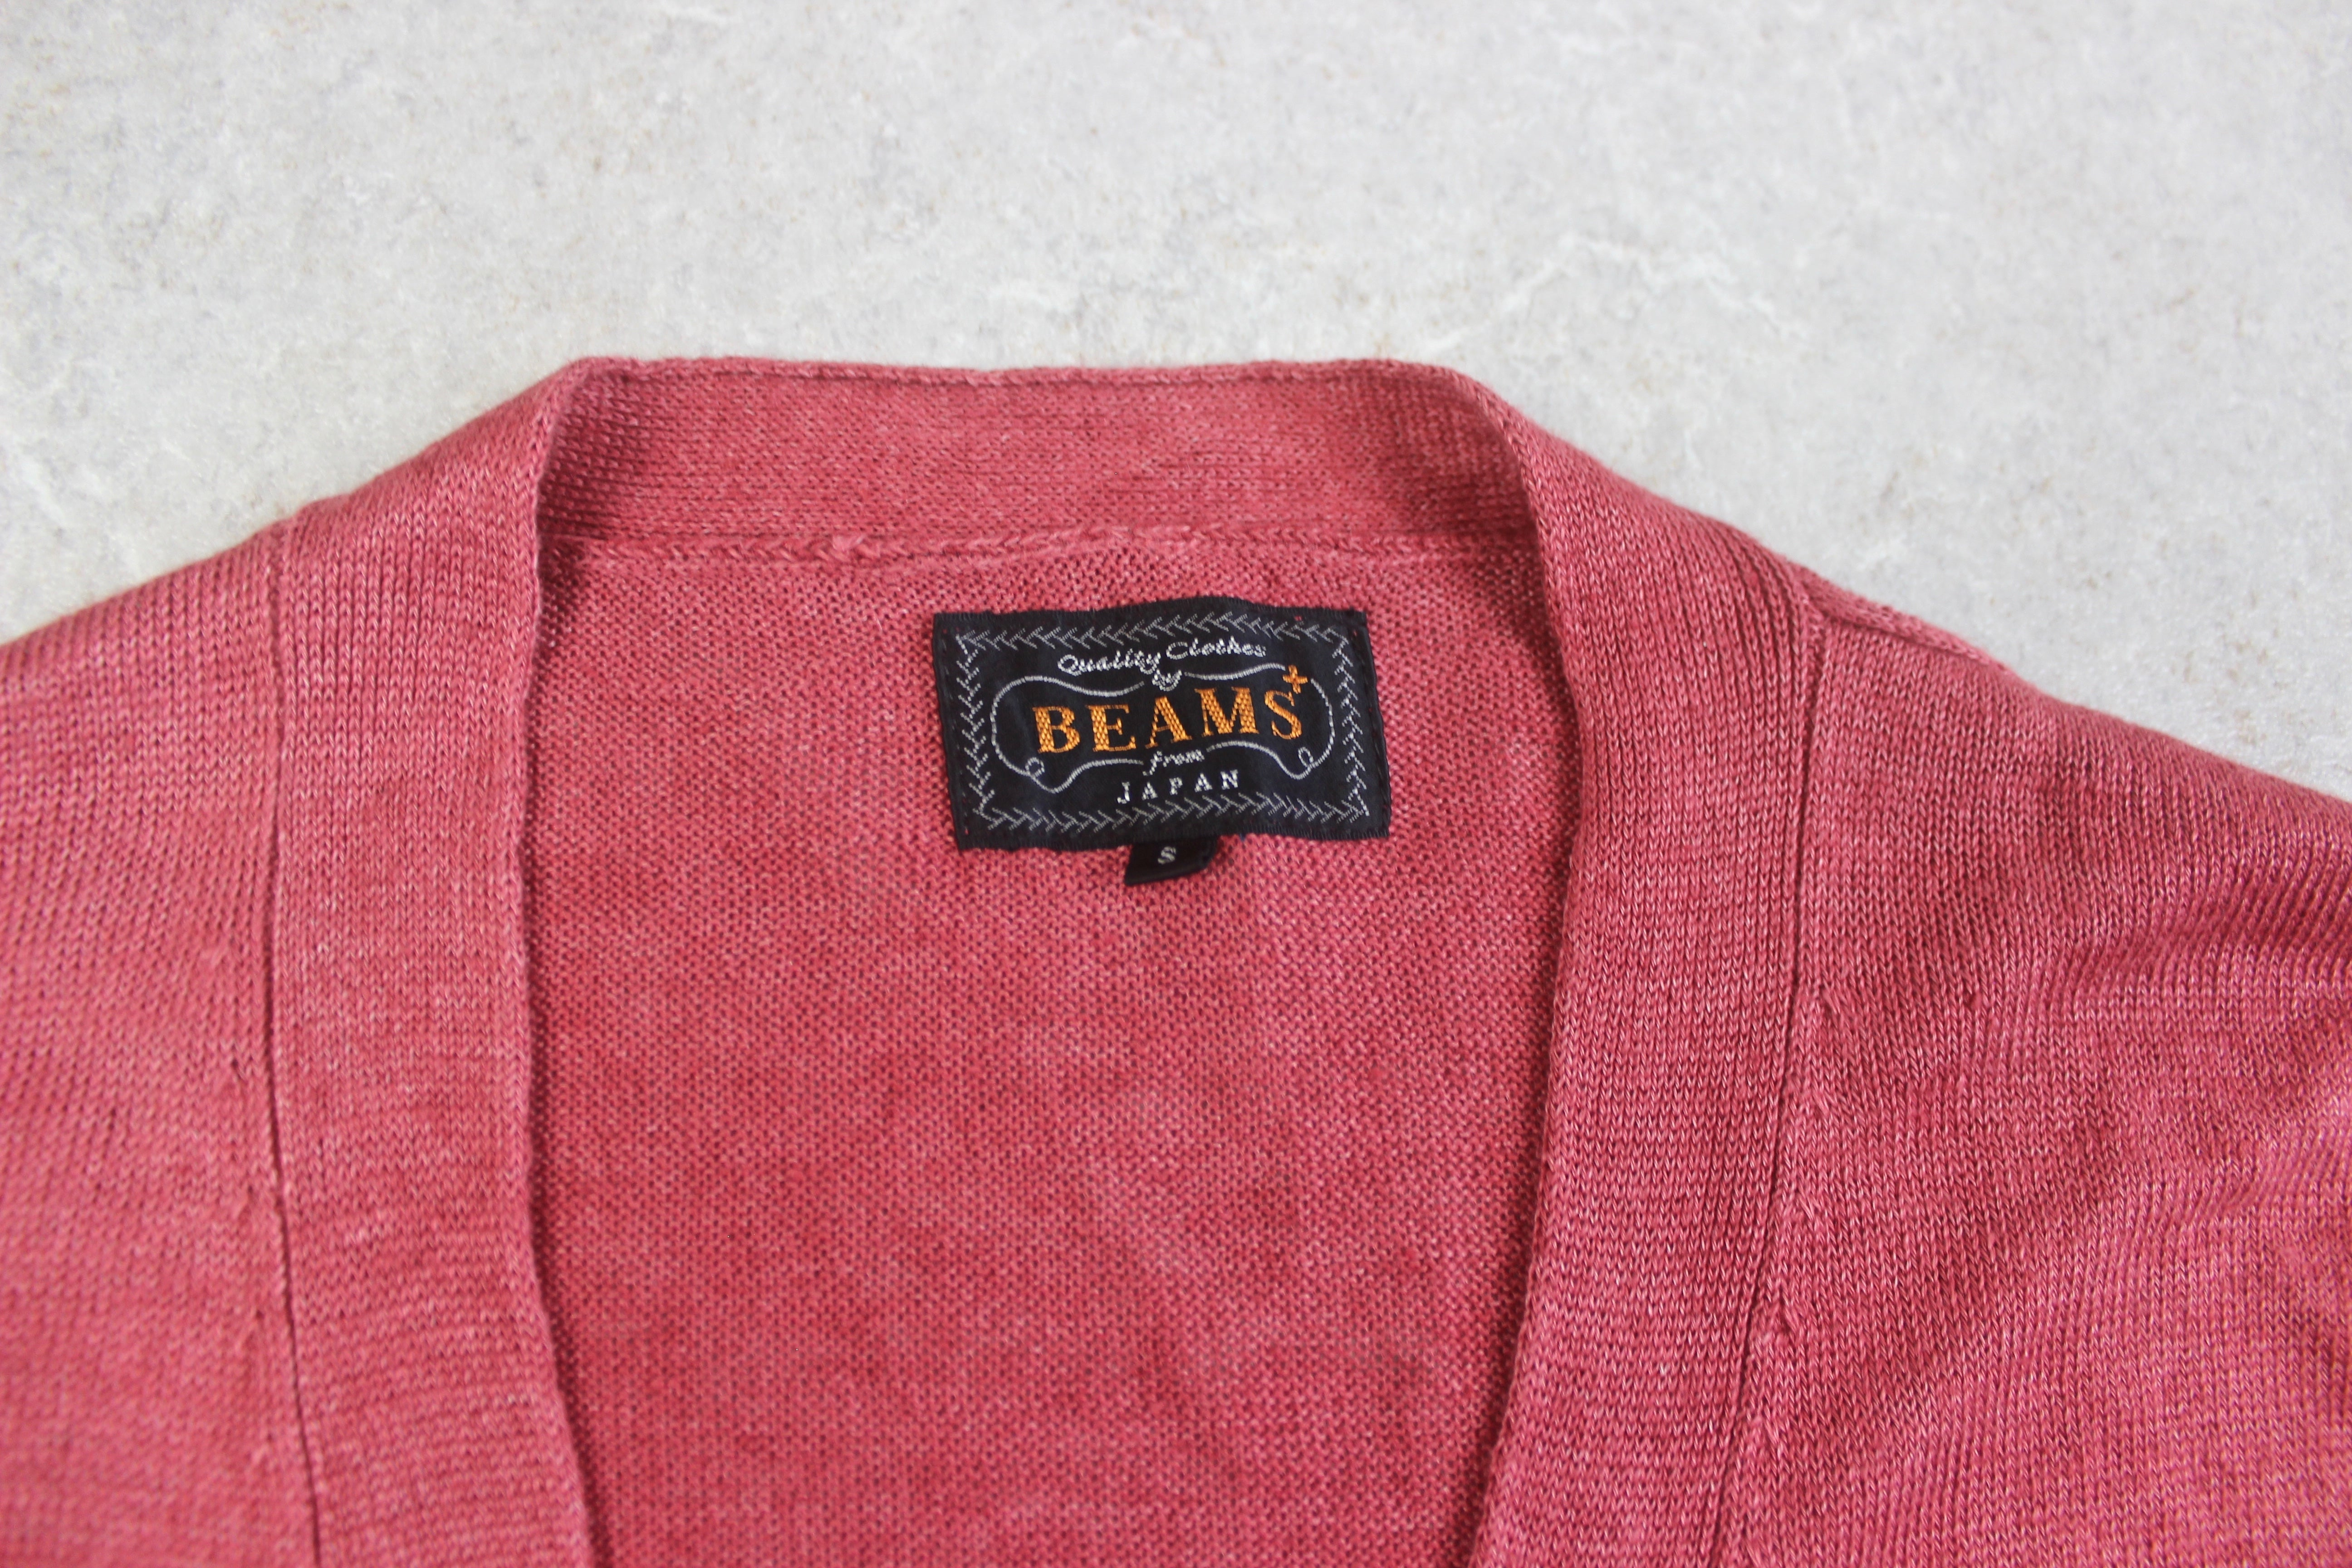 Beams Plus - Linen Knit Cardigan Jumper - Pink/Red - Small